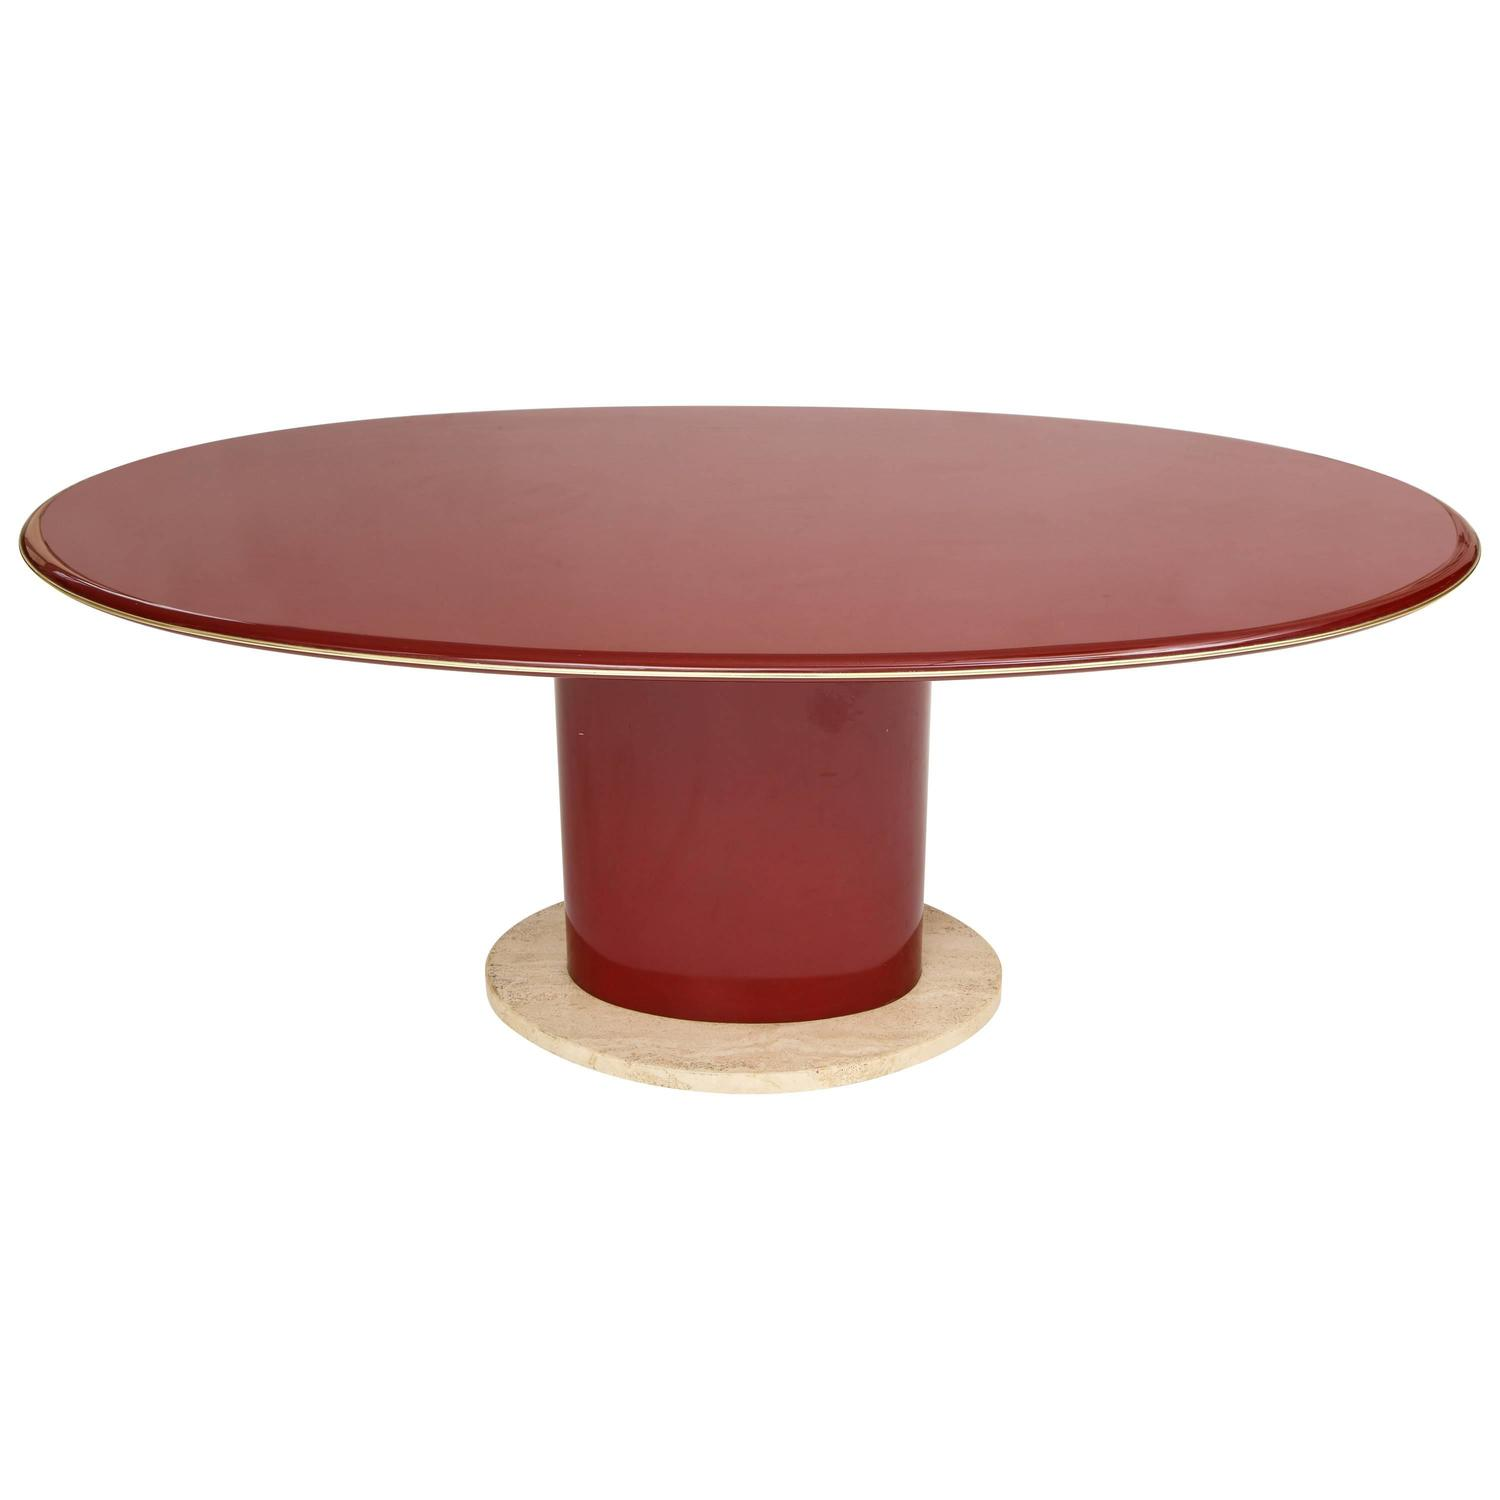 Italian Red Lacquer Dining Table, Desk, Travertine Base And Gold Trim, 1980s